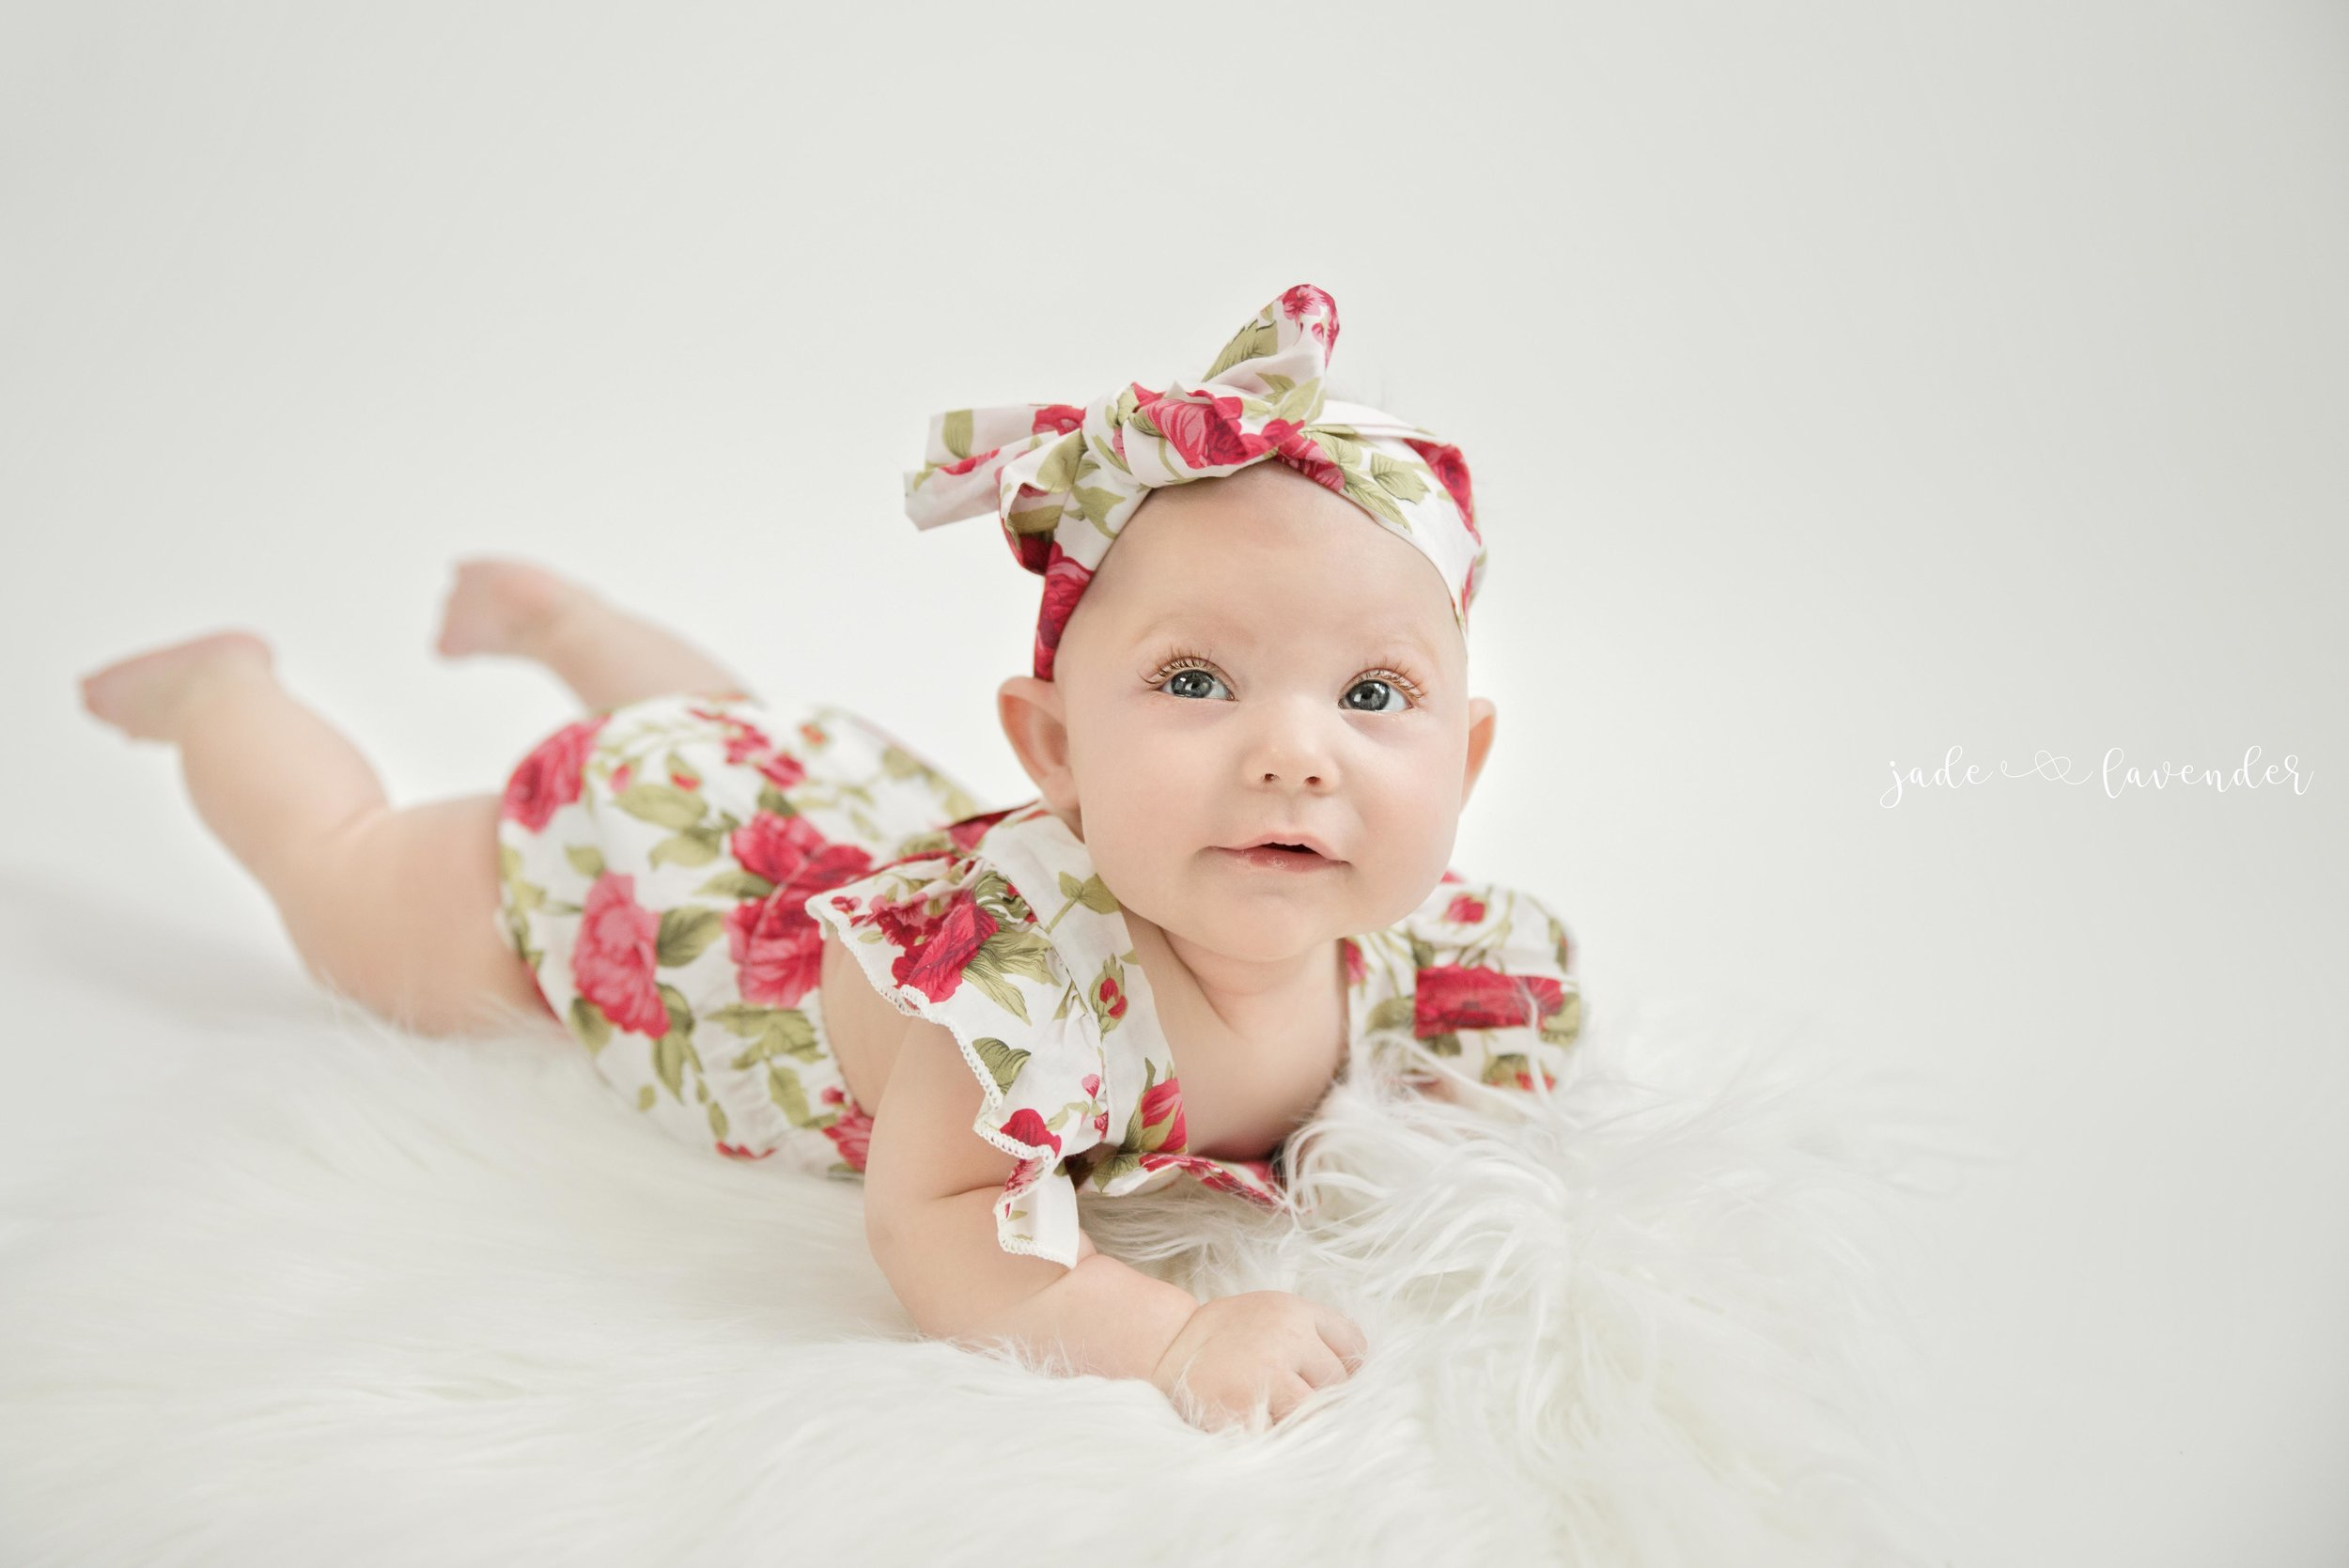 amazing-cute-baby-images-professional-photography.jpg